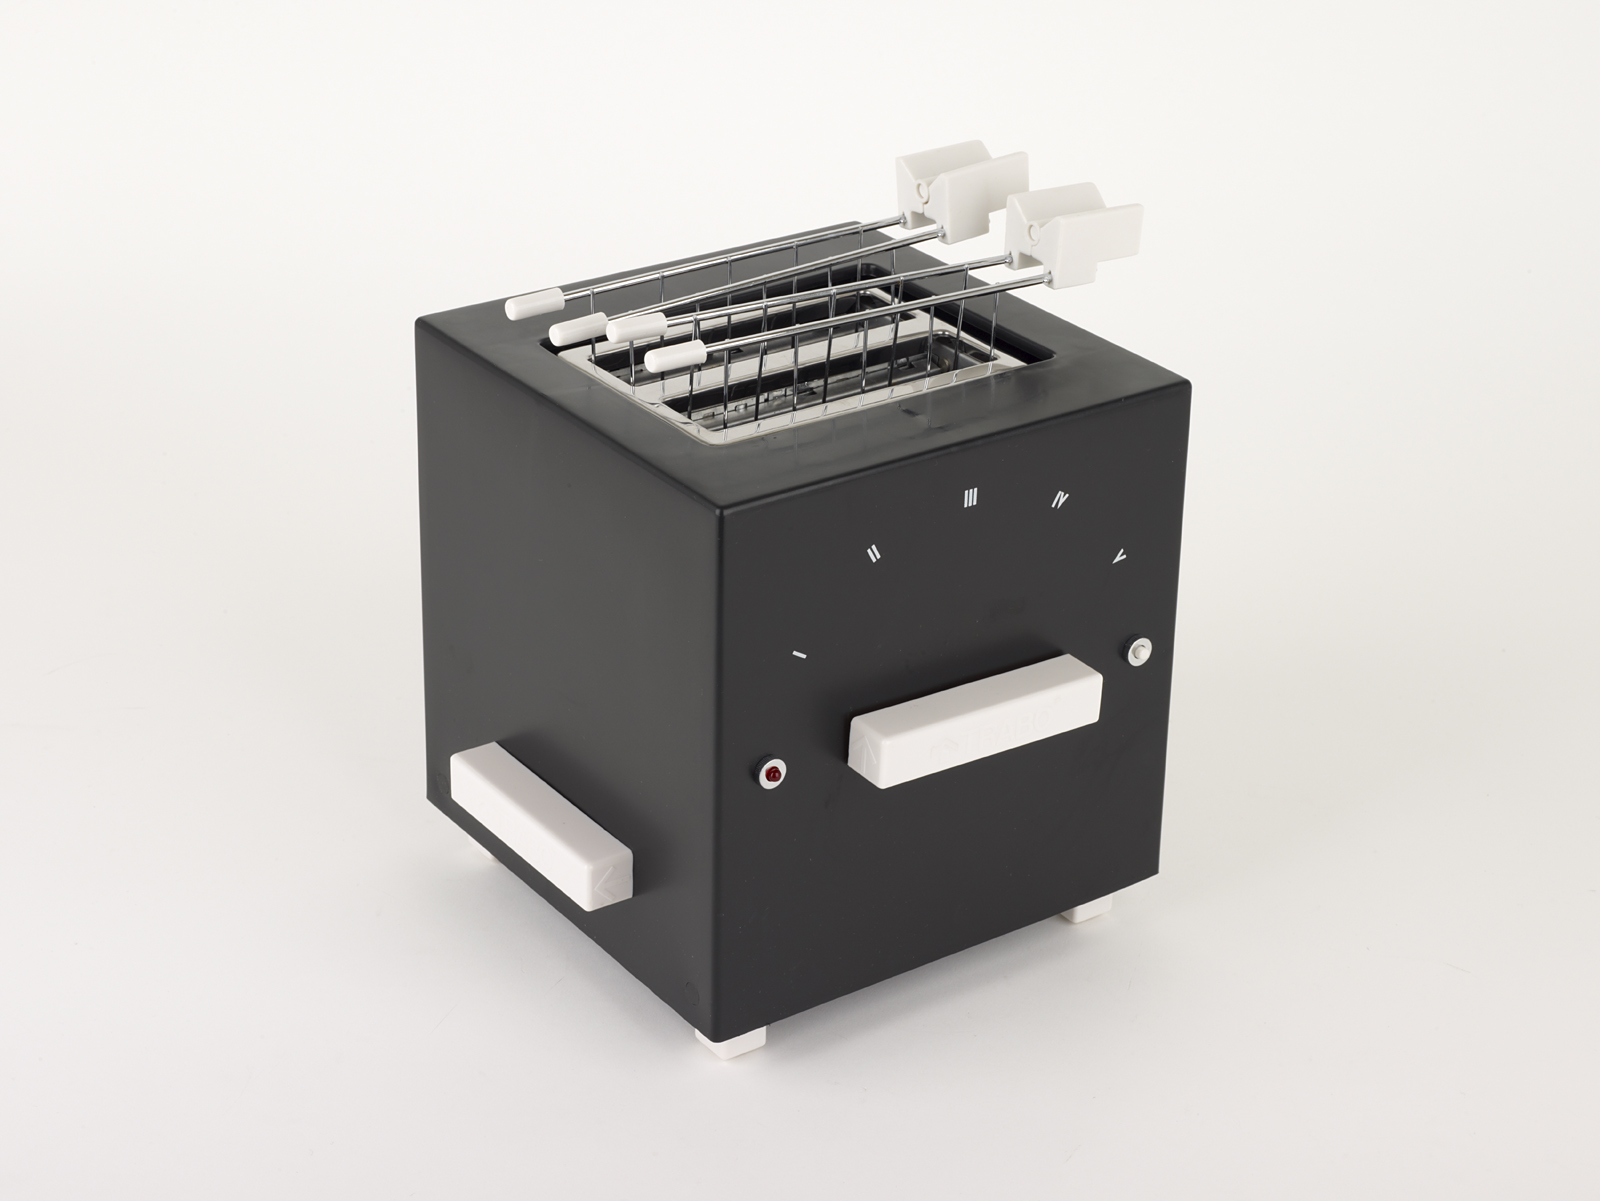 Design Museum, Adopt an Object, Block Toaster, Year 2004, Designer Piero Russi for Trabo